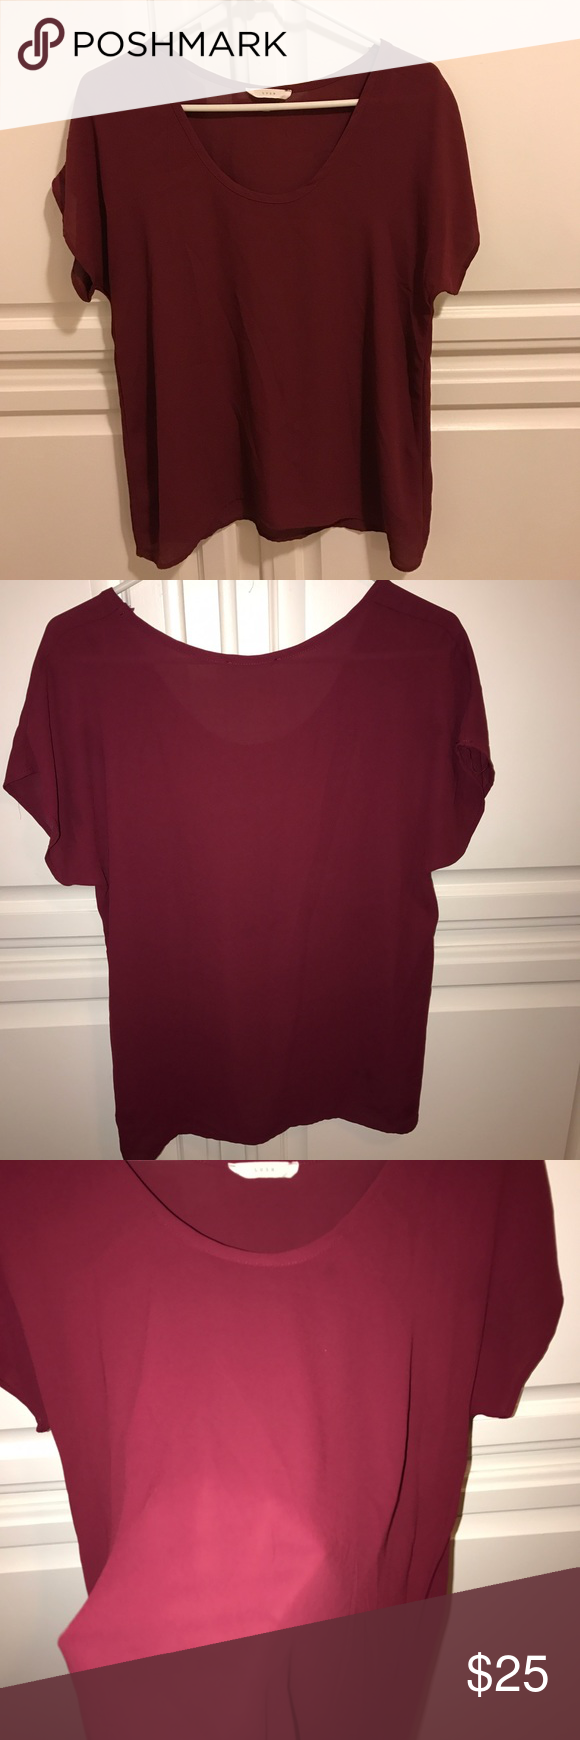 Nordstrom Shirt Lush shirt from Nordstrom! Cute burgundy/red. Hardly worn. Perfect condition. Almost like a chiffon material. Not stretchy but has a loose fit! :) Lush Tops Tees - Short Sleeve